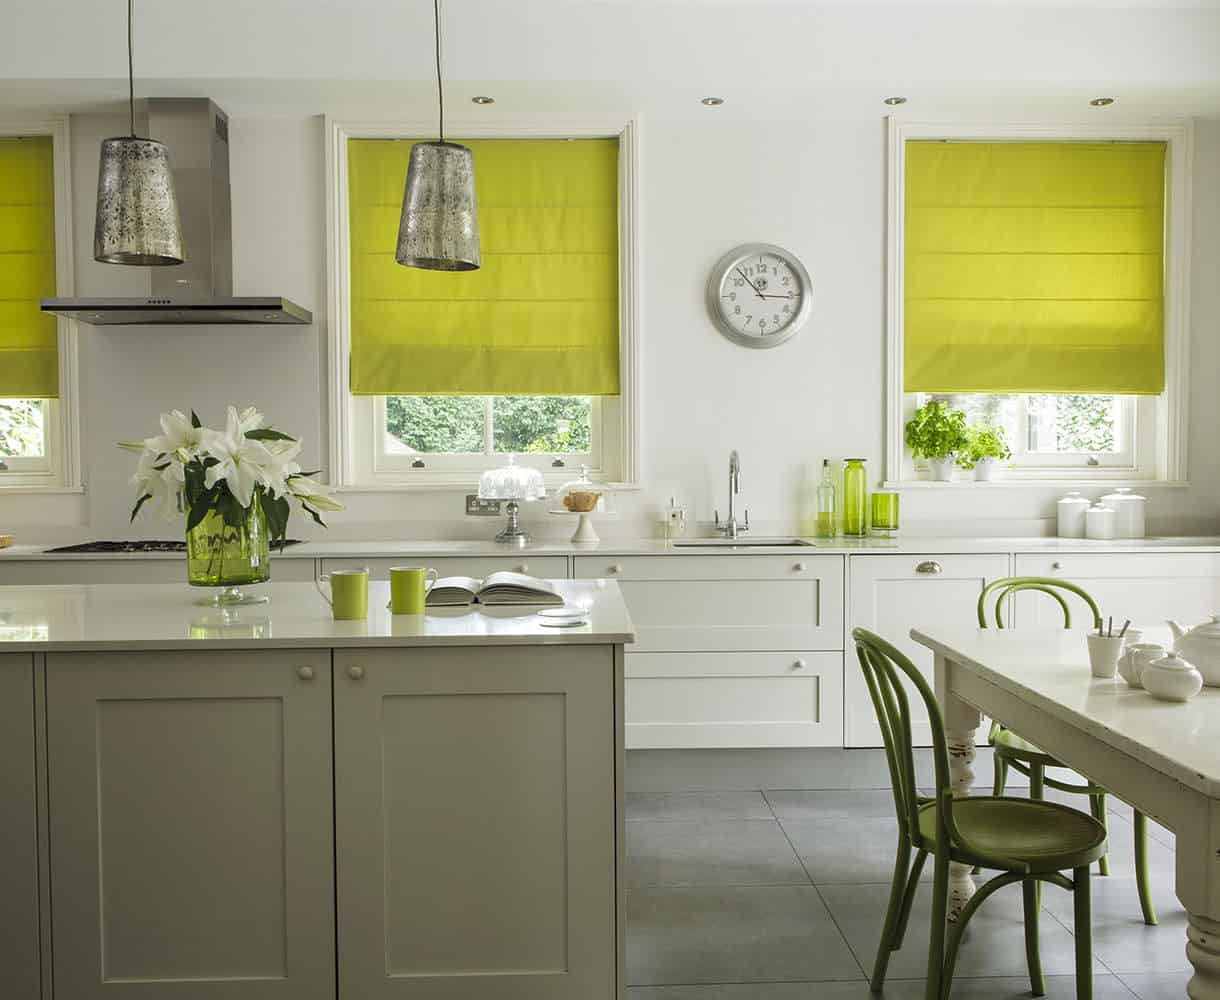 kitchen blinds booster seat 3 nice personalise your with milano lime roman